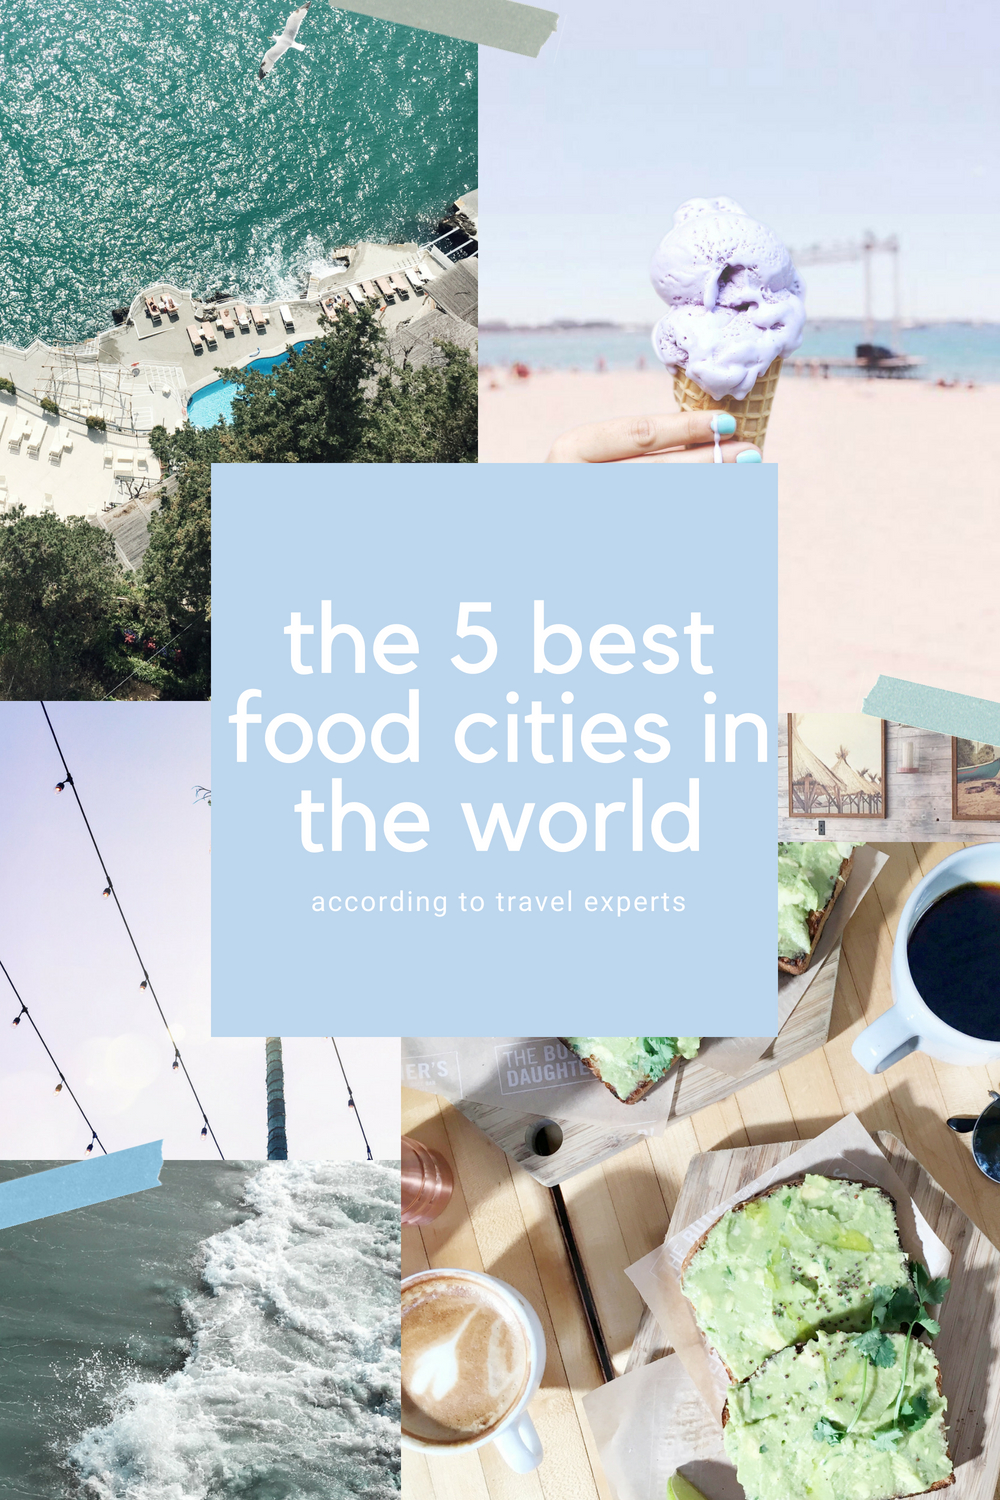 the best food cities according to travel experts